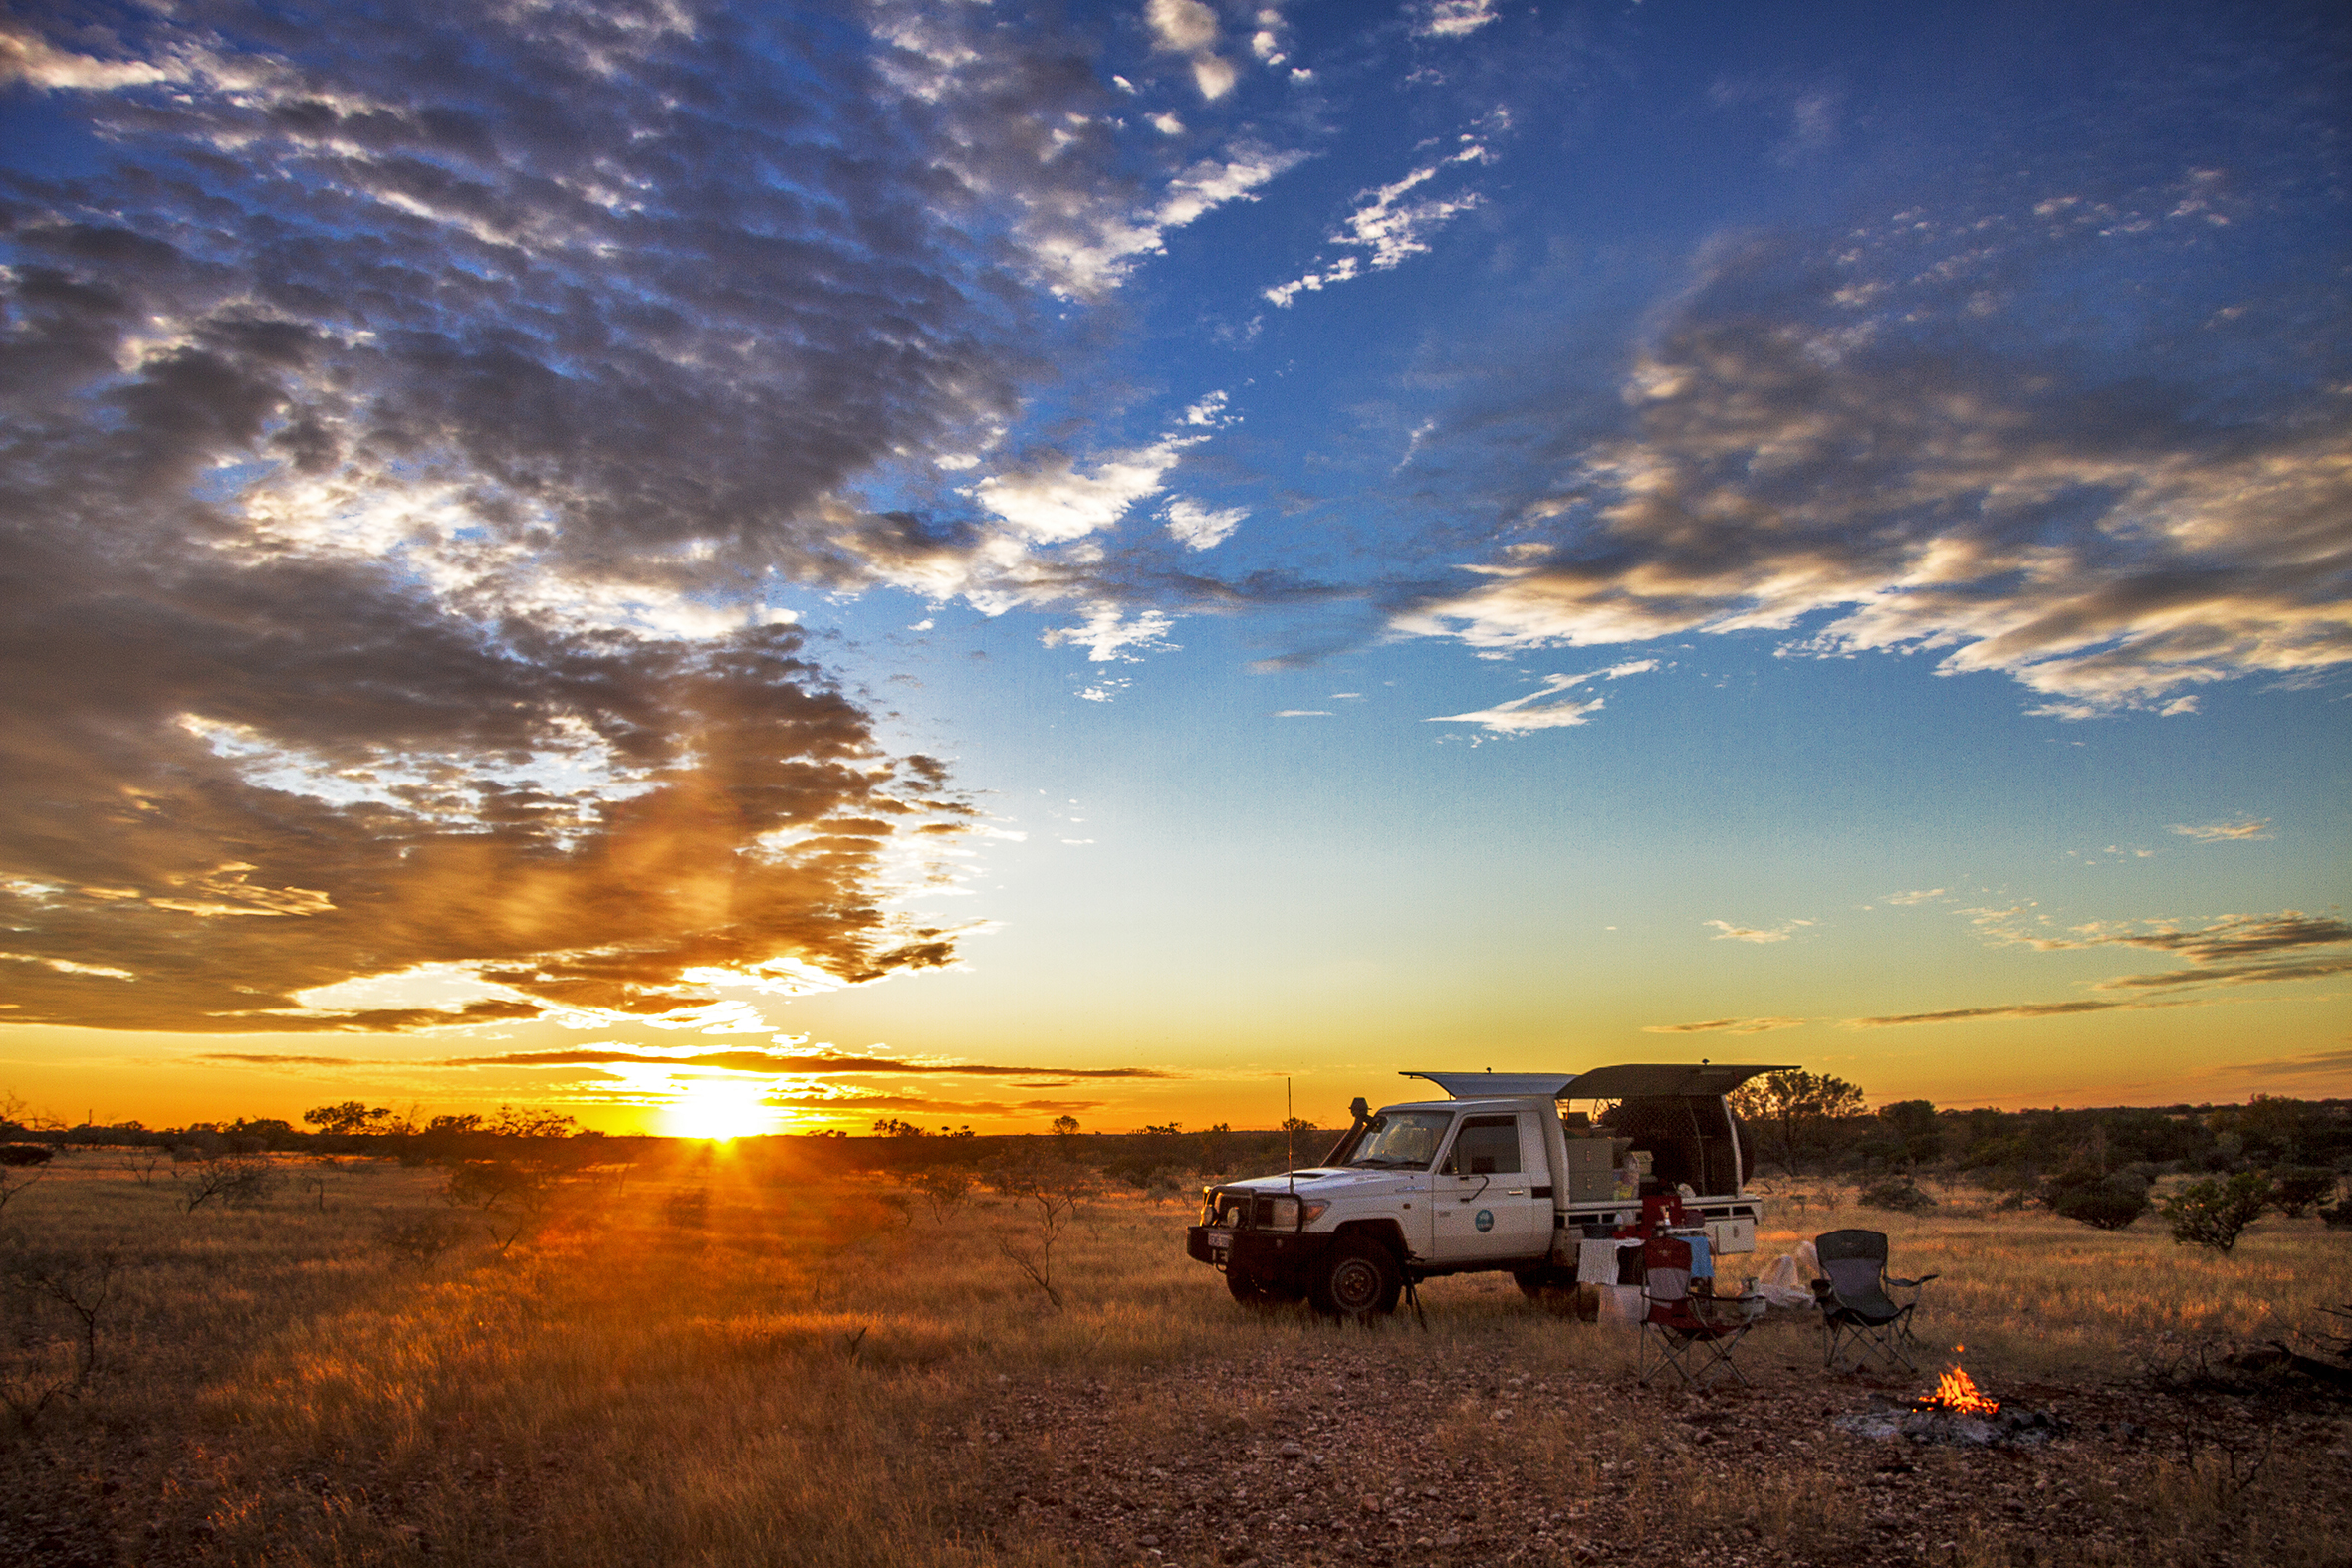 Scientists in the field standing next to a CSIRO vehicle at sunset.